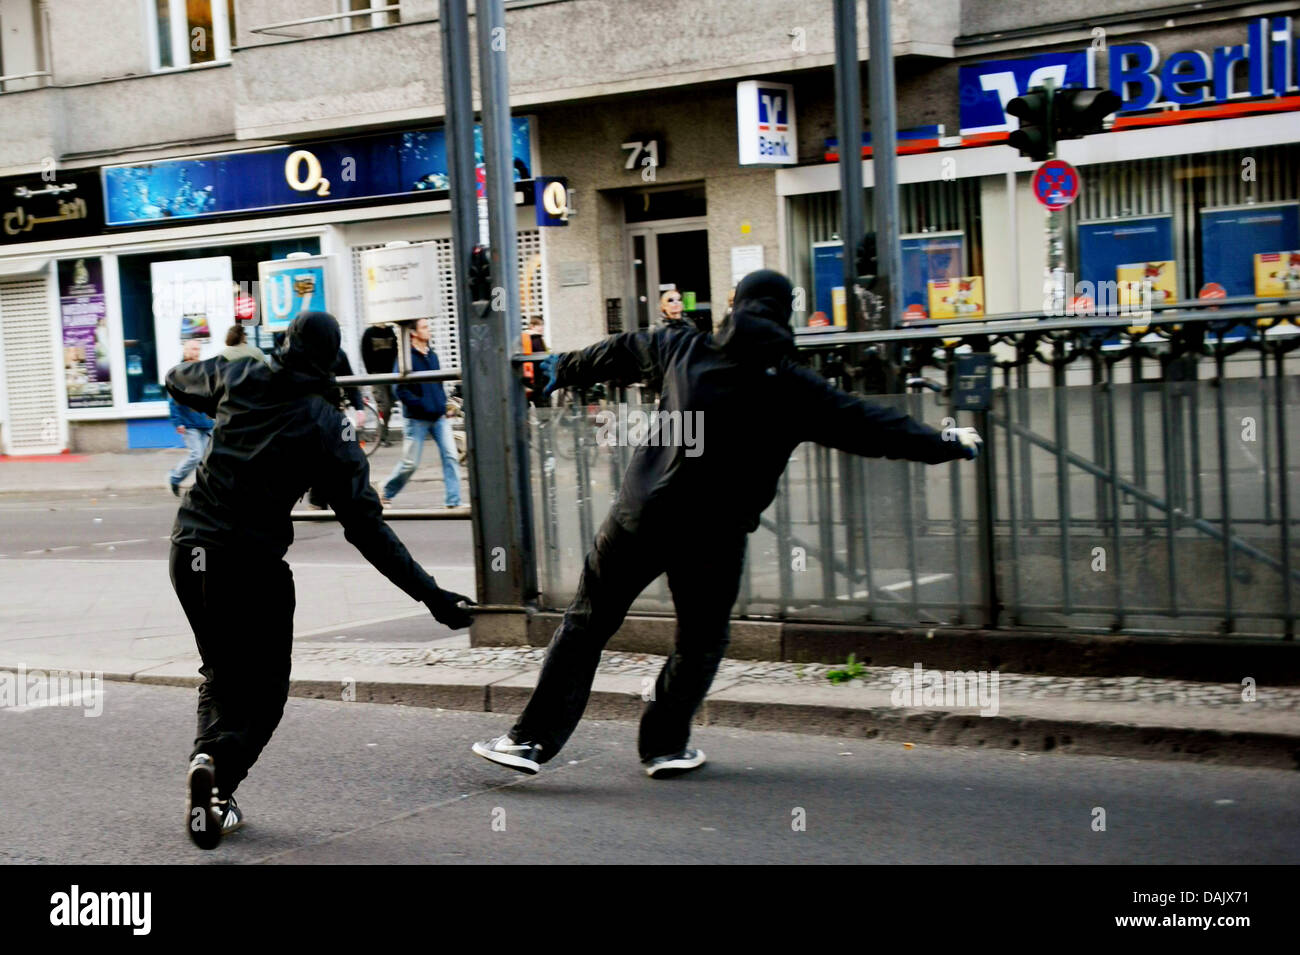 Leftists throw stones at the revolutionary Nay day demonstration in Berlin, Germany, 1 May 2011. Photo: Hannibal - Stock Image